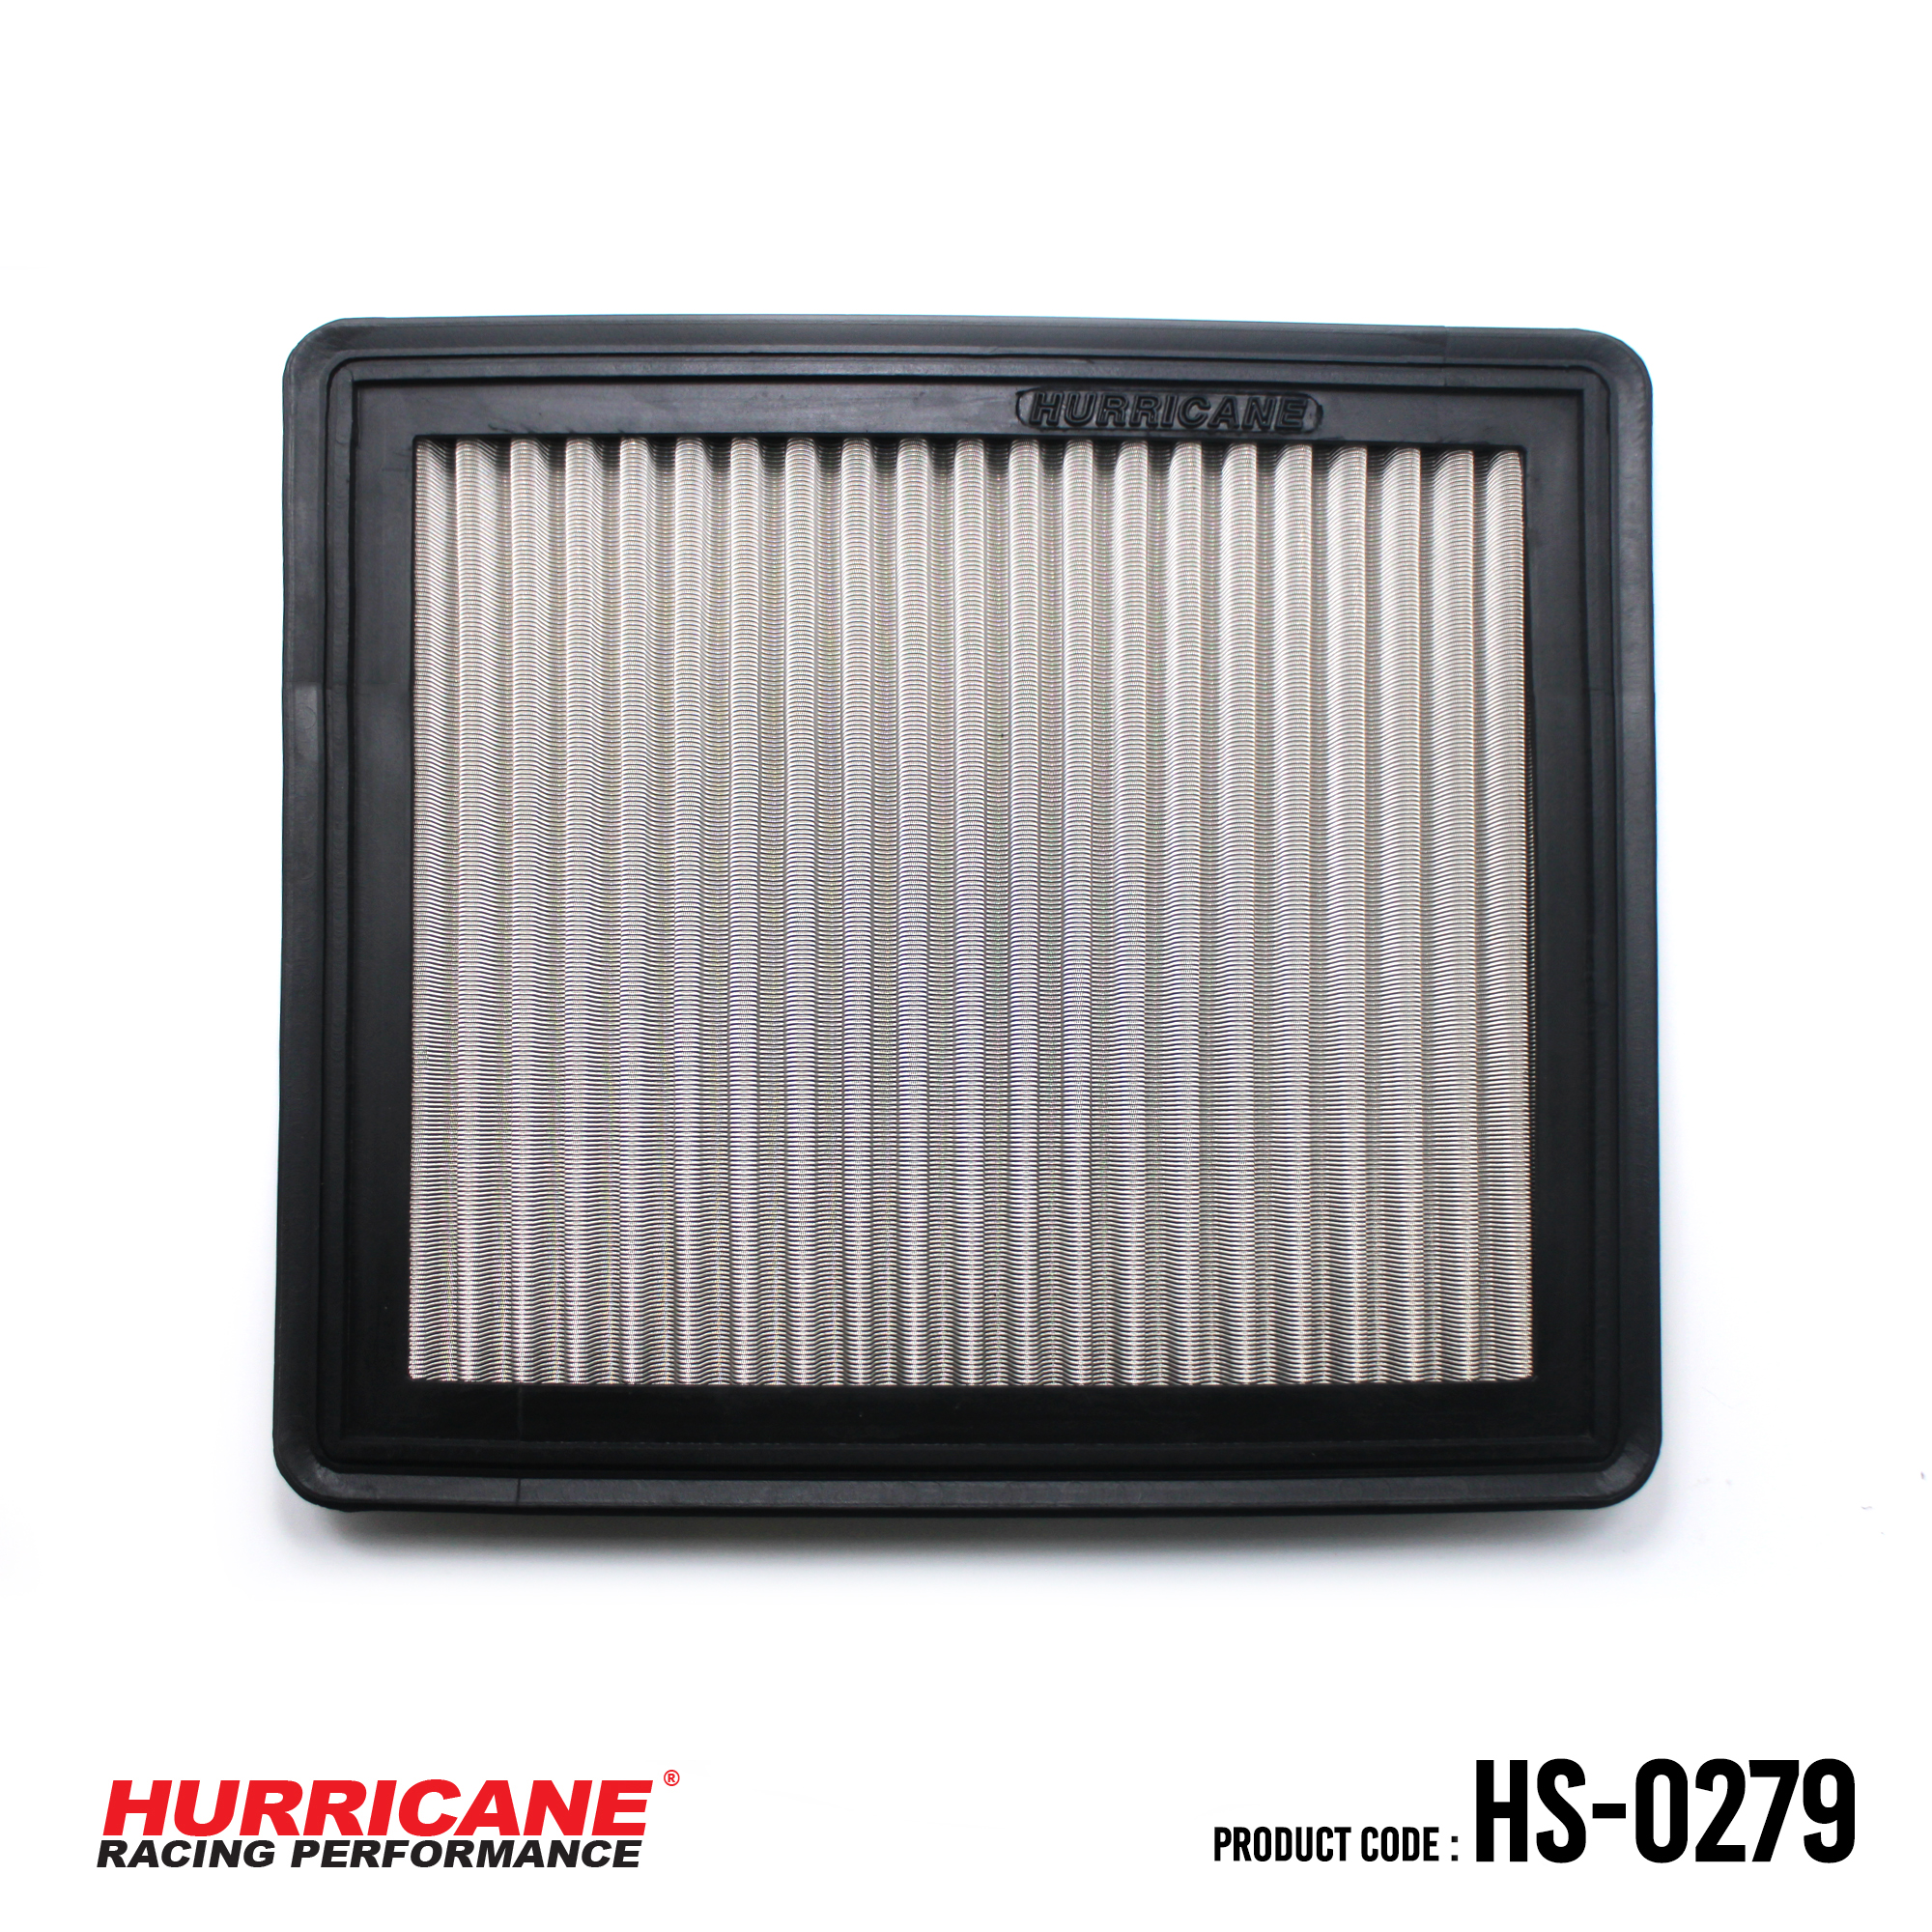 HURRICANE STAINLESS STEEL AIR FILTER FOR HS-0279 Mitsubishi